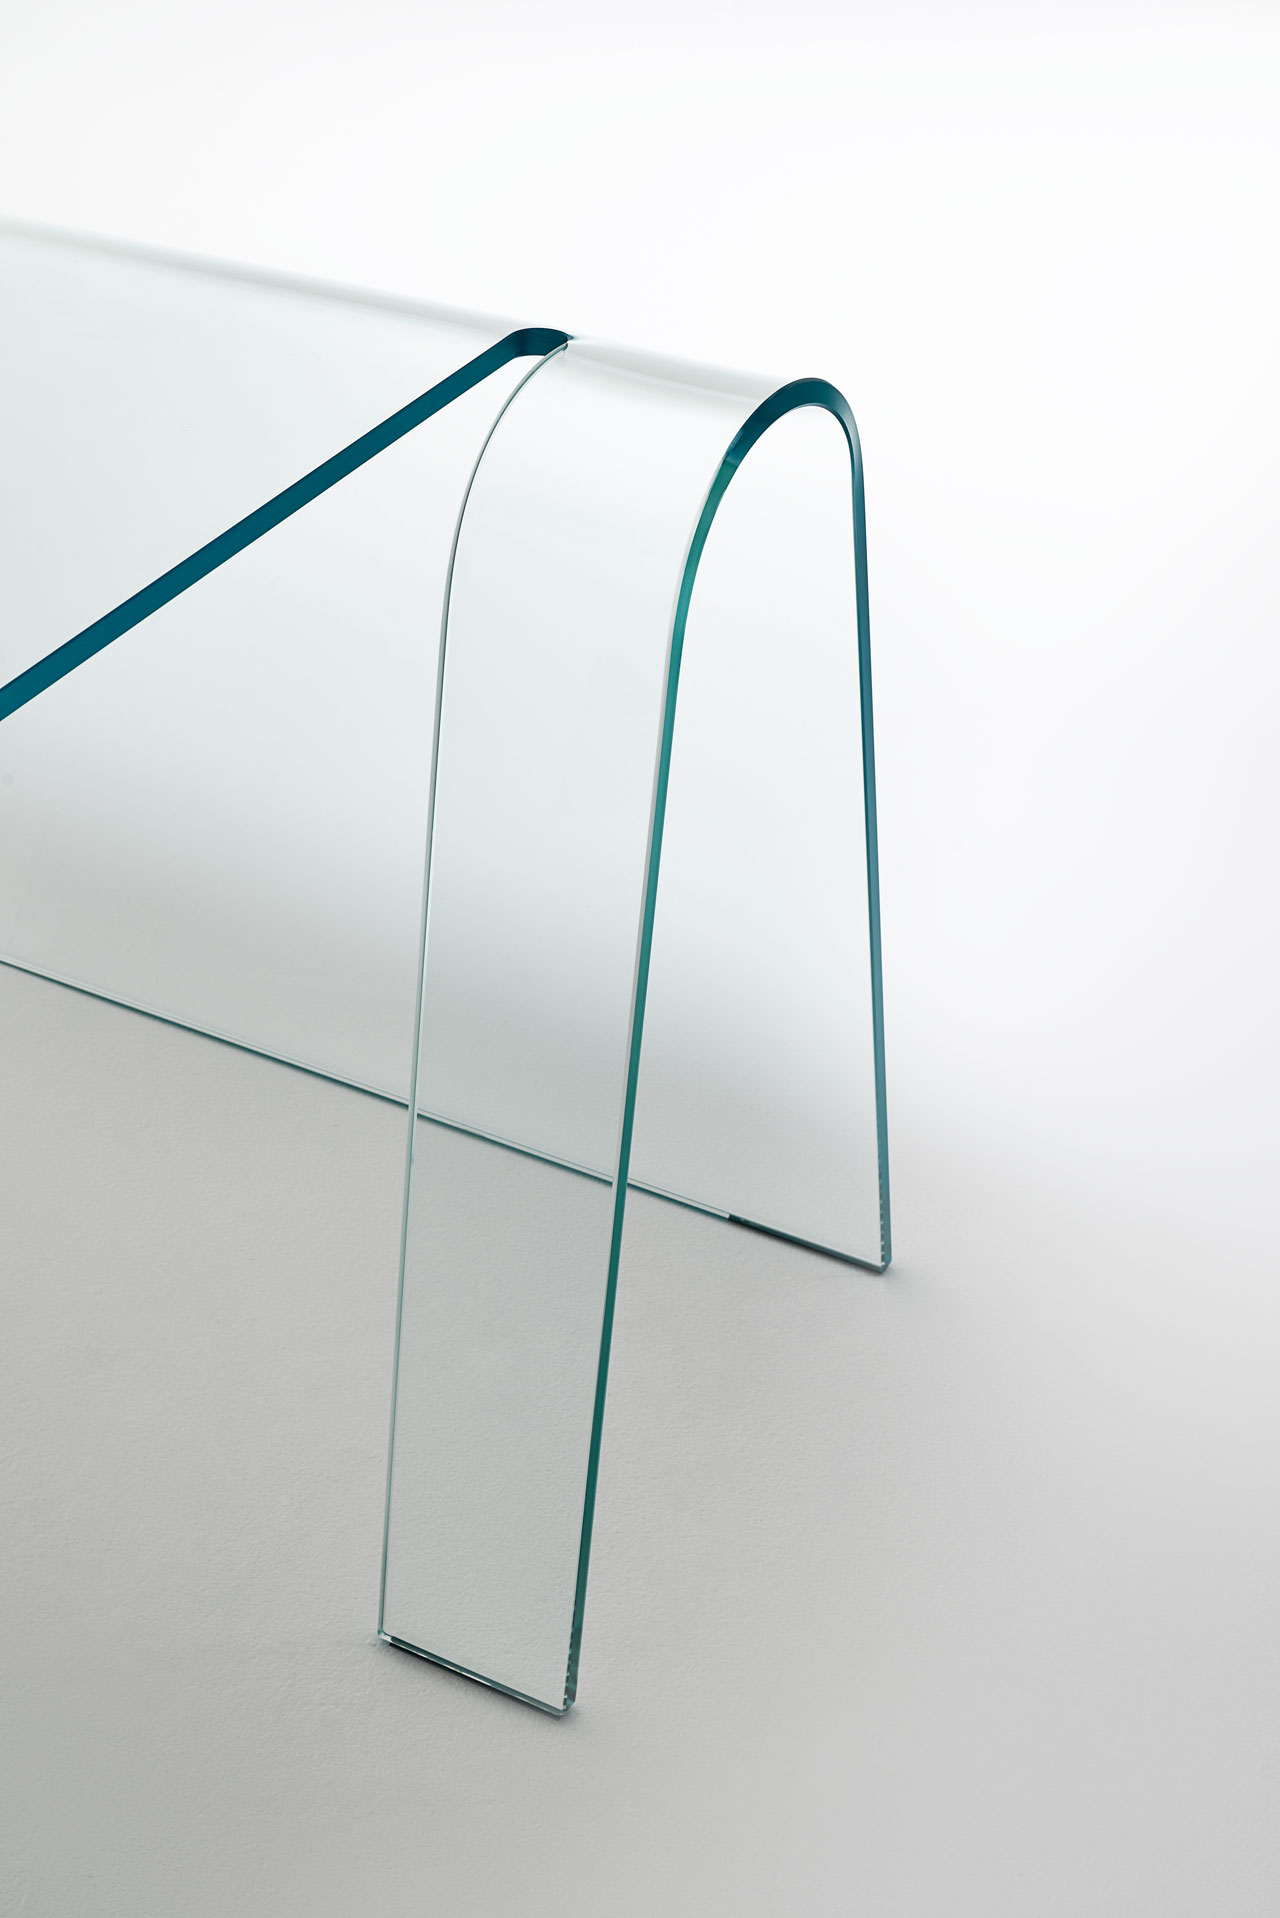 FOLIO glass desk by Yabu Pushelberg for GLAS Italia. Made with a single sheet of transparent 15mm thick extralight curved glass.